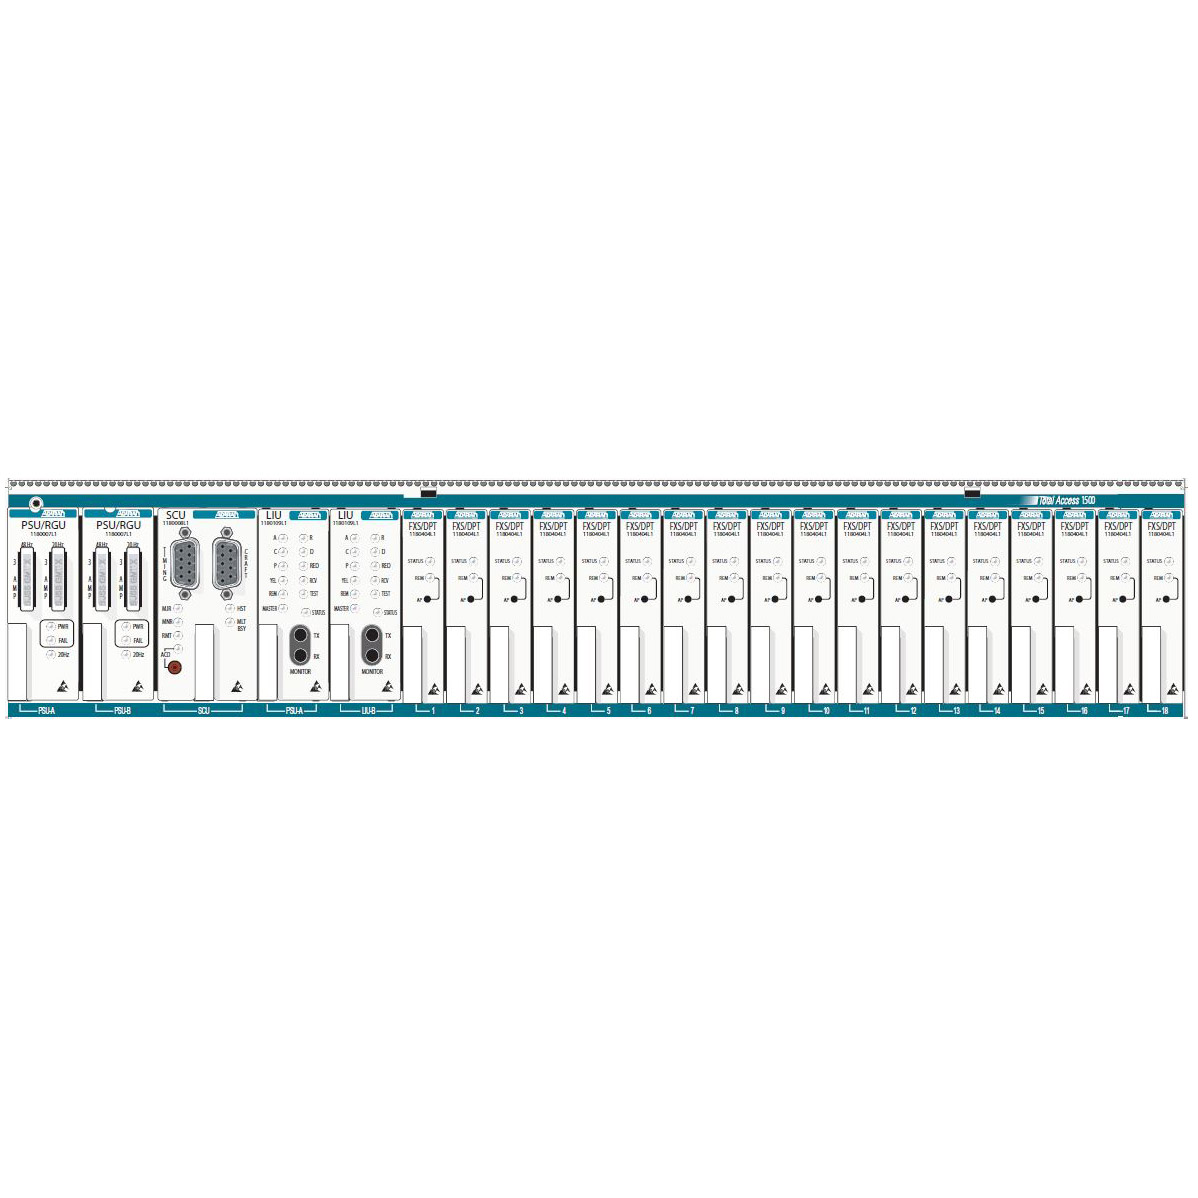 Adtran Total Access 1500 19-Inch Chassis - 1180019L1